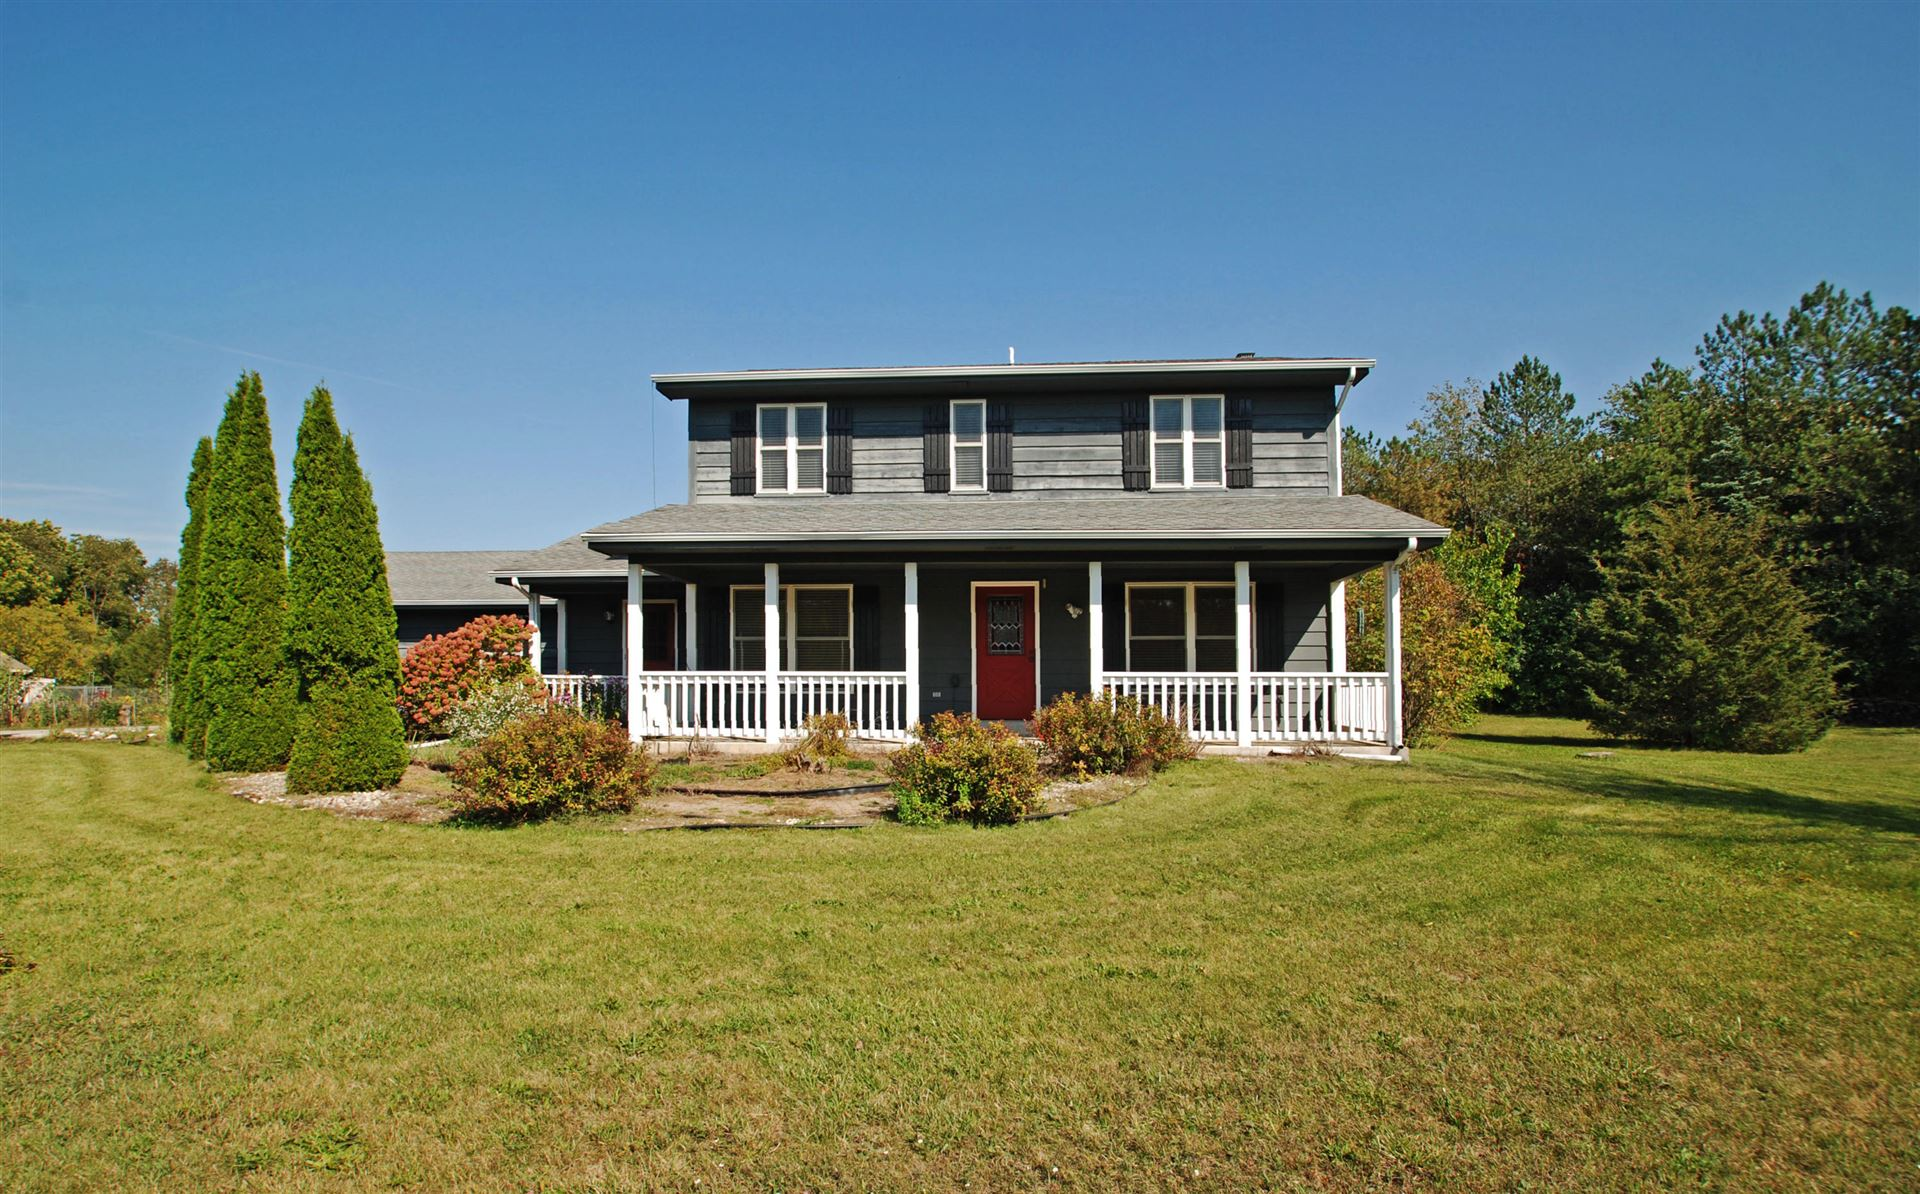 W335S5050 Fox Hollow Dr, Genesee, WI 53118 - #: 1711914